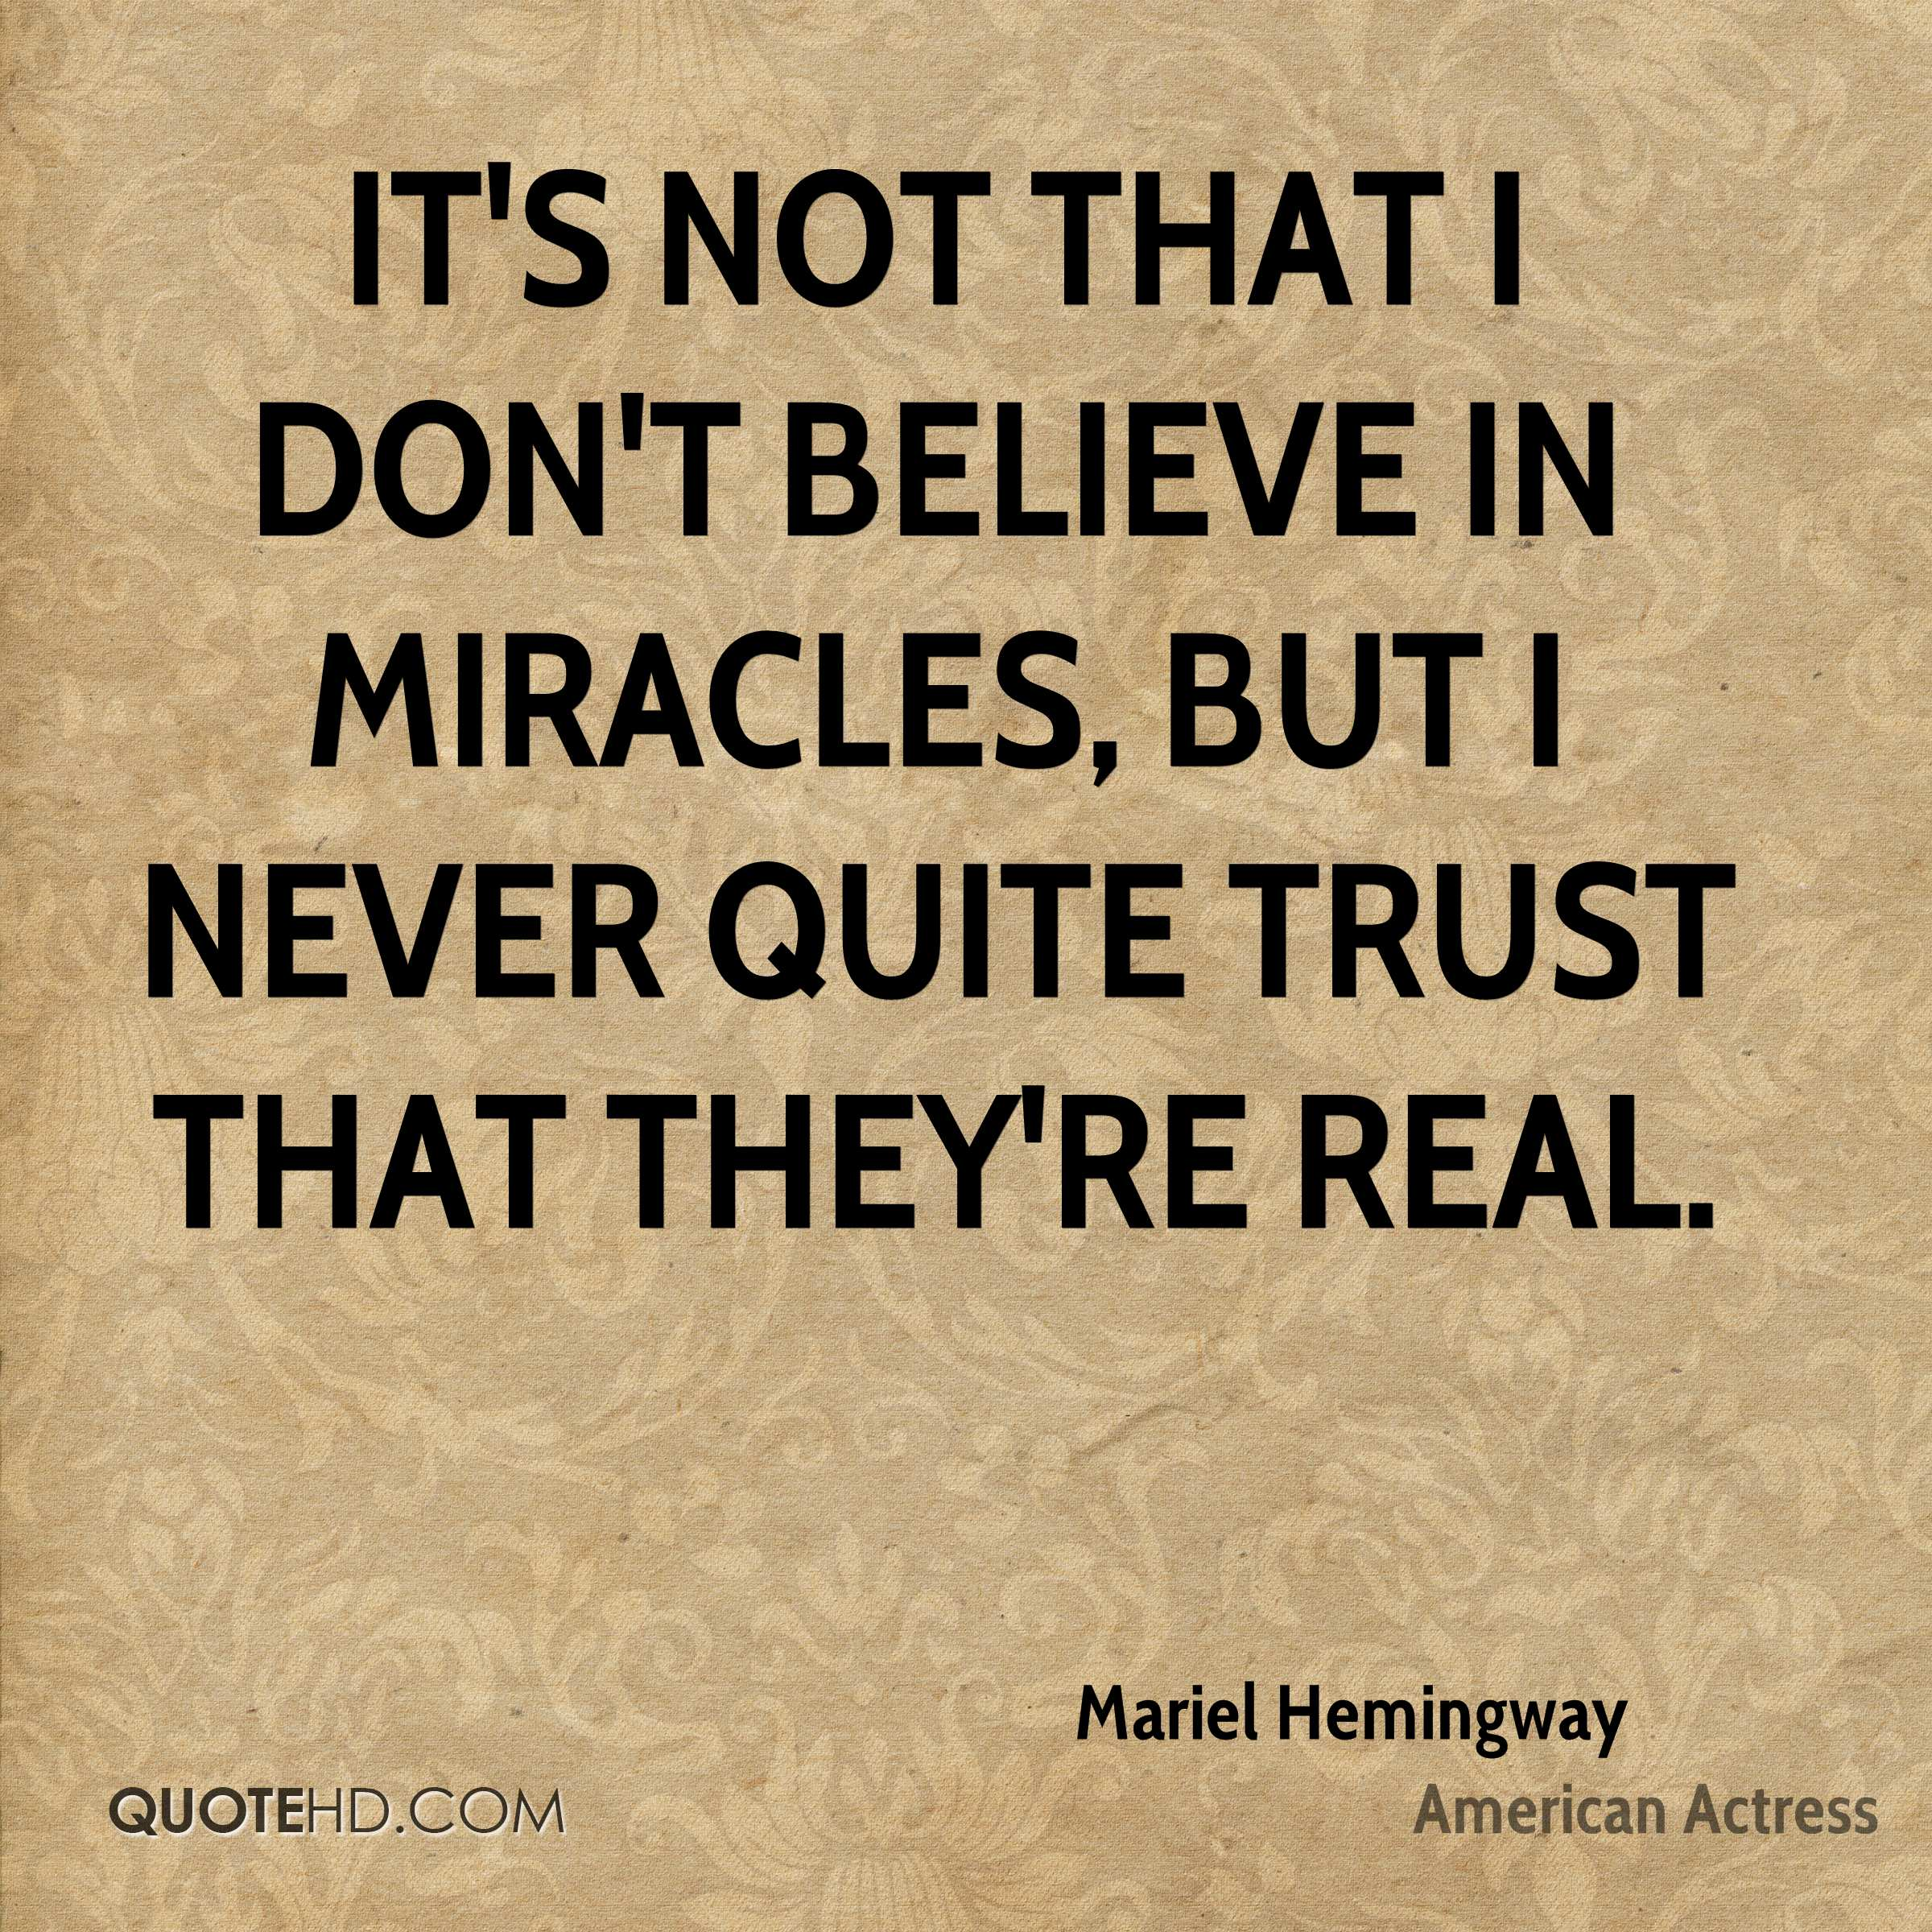 It's not that I don't believe in miracles, but I never quite trust that they're real.